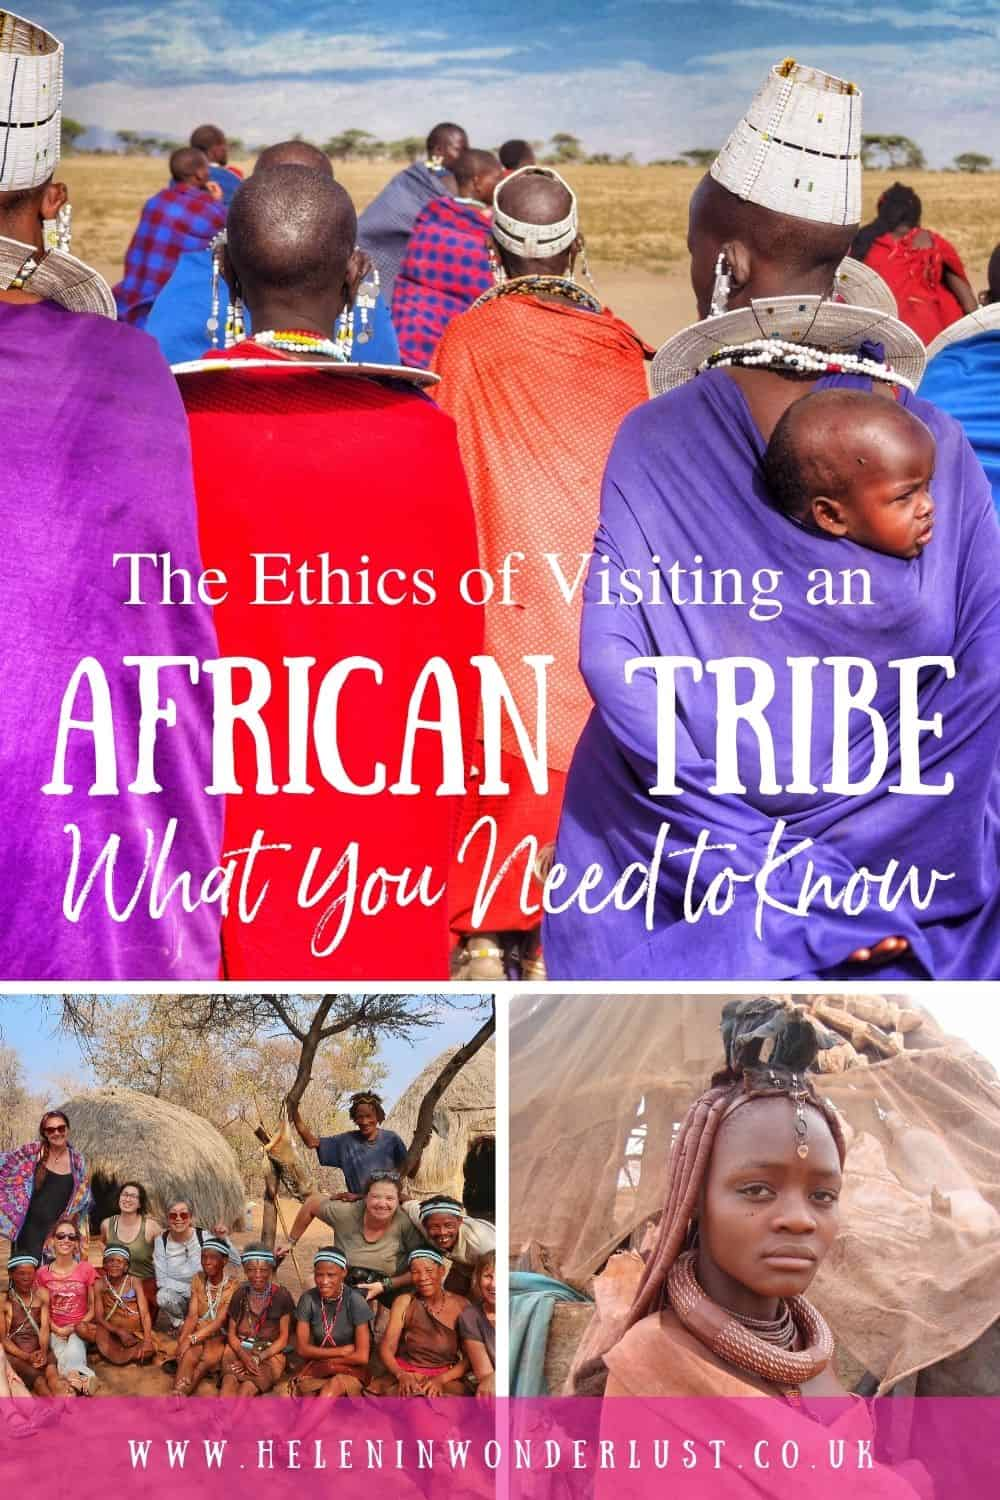 The Ethics of Visiting an African Tribe What You Need To Know